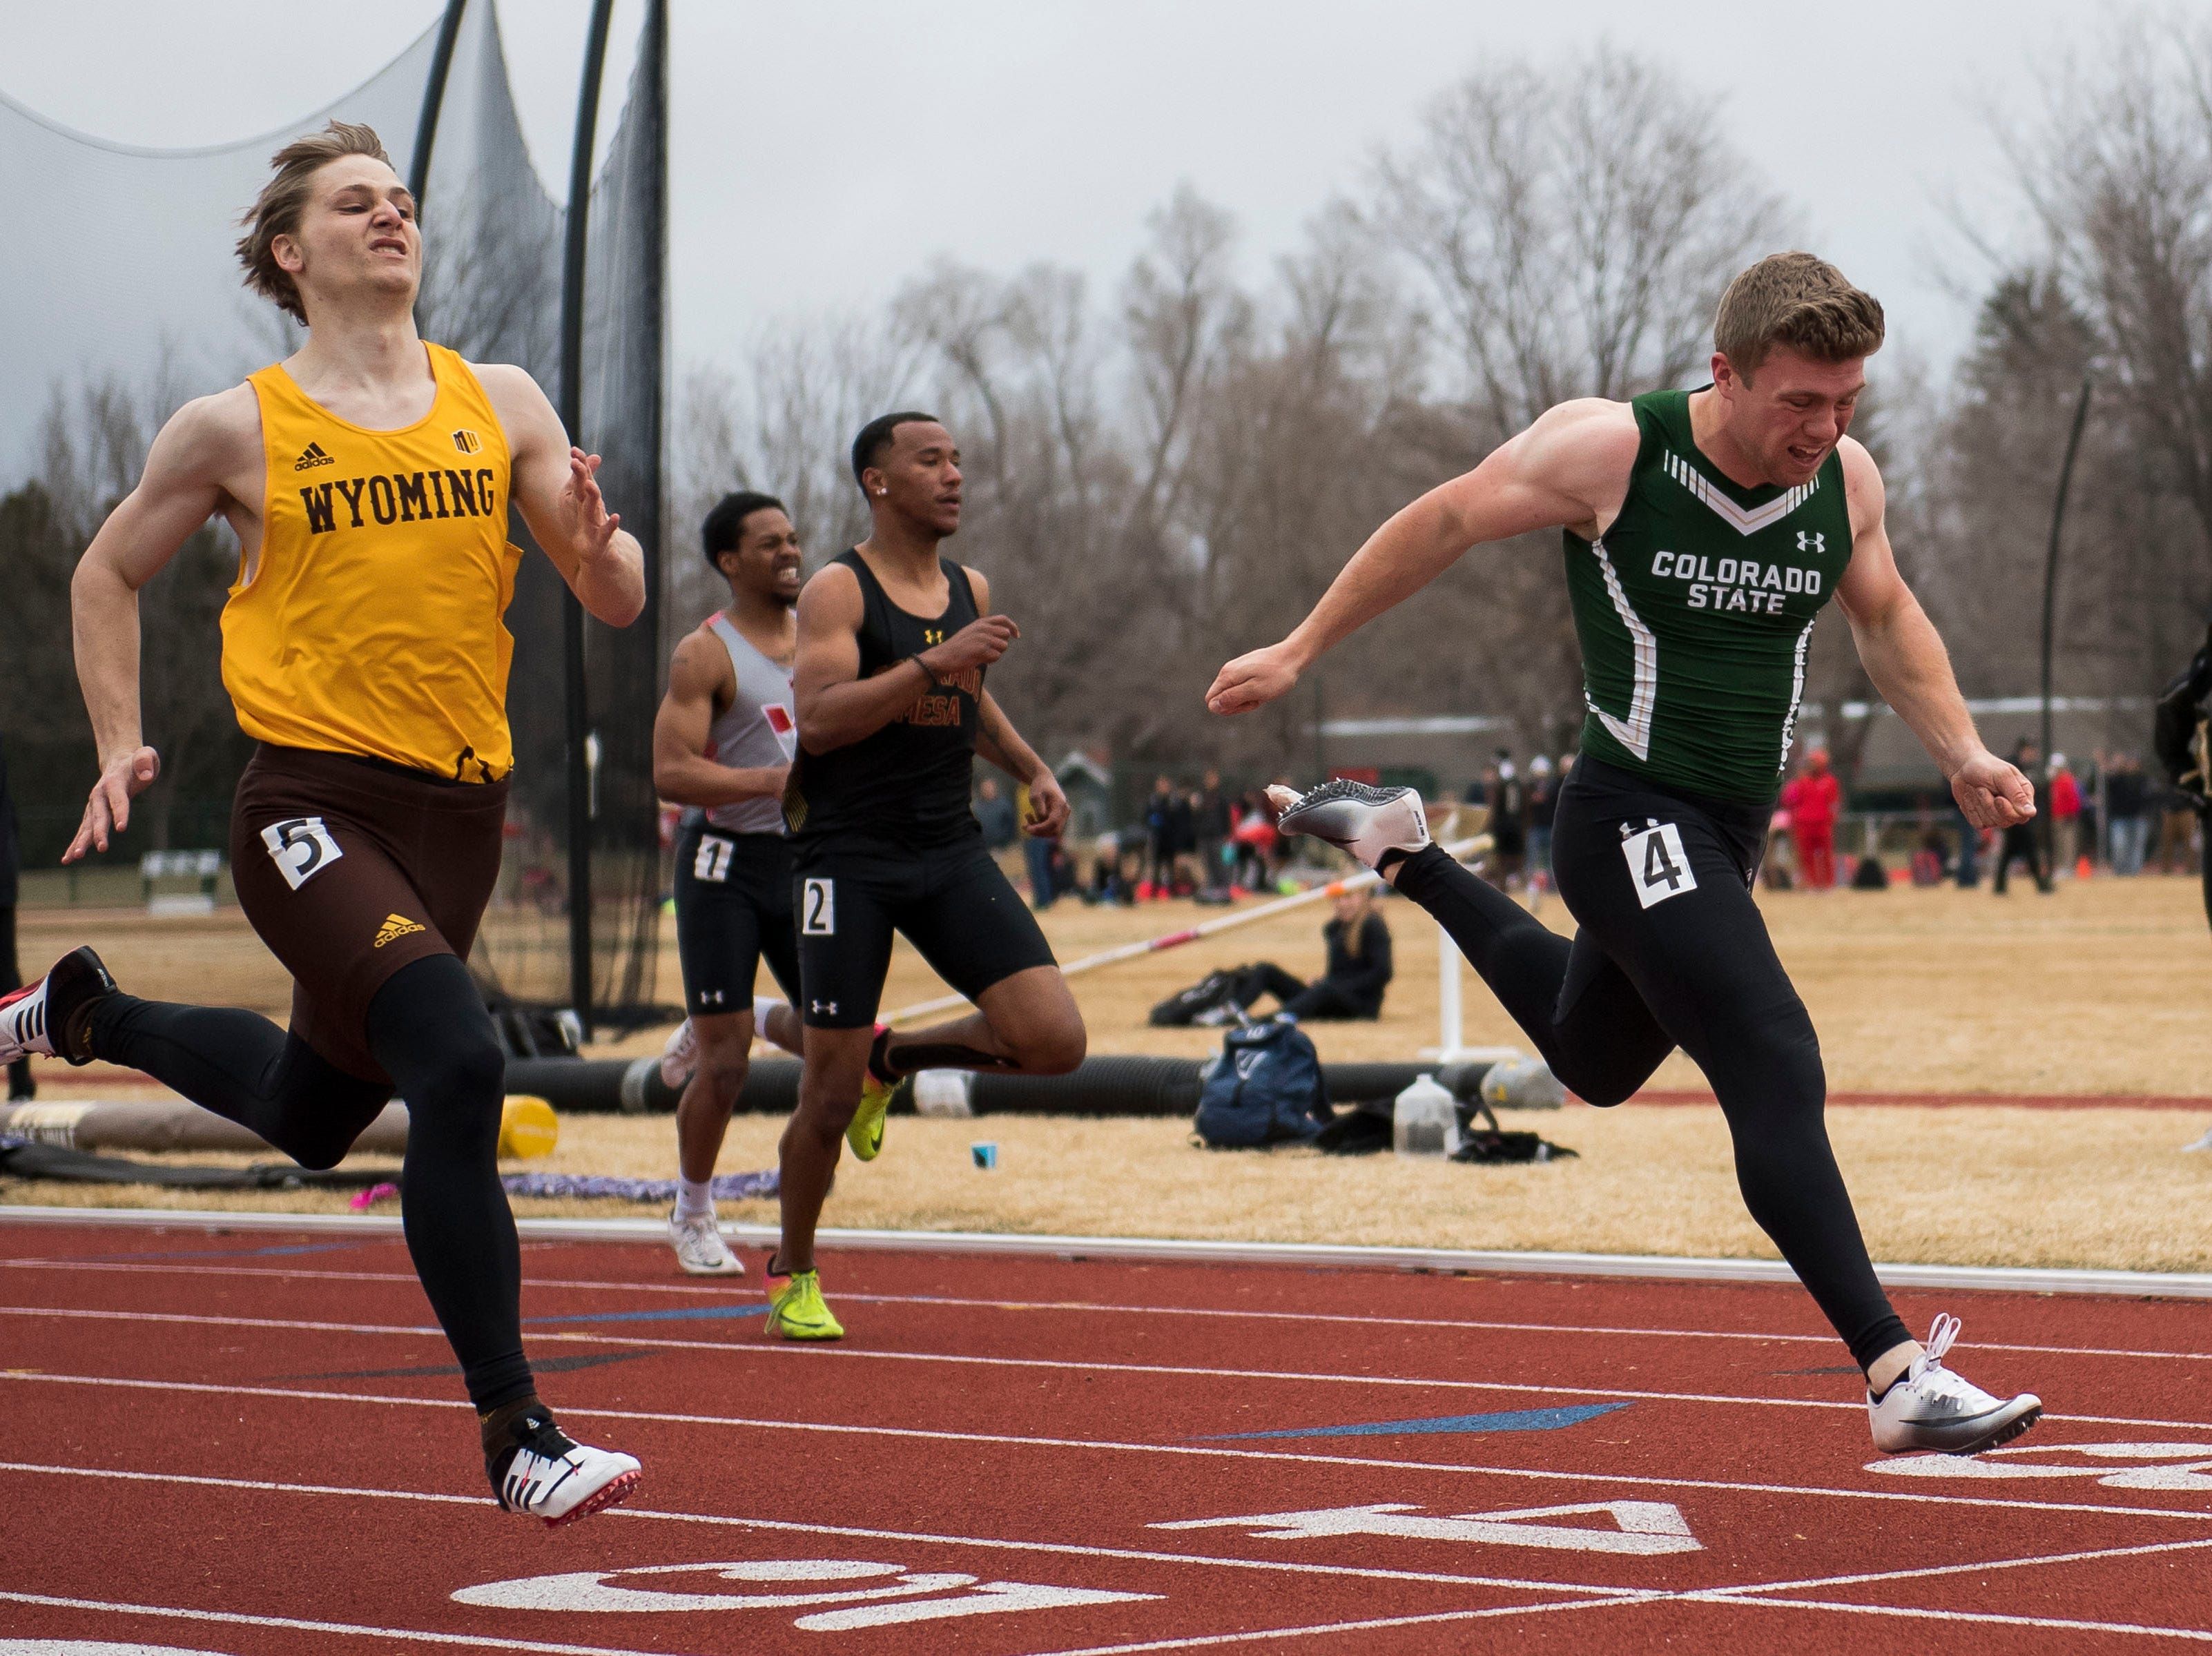 Colorado State University junior Will Domier competes in the mens 200-meter dash on Saturday, March 23, 2019, at the Jack Christiansen Memorial Track in Fort Collins, Colo.